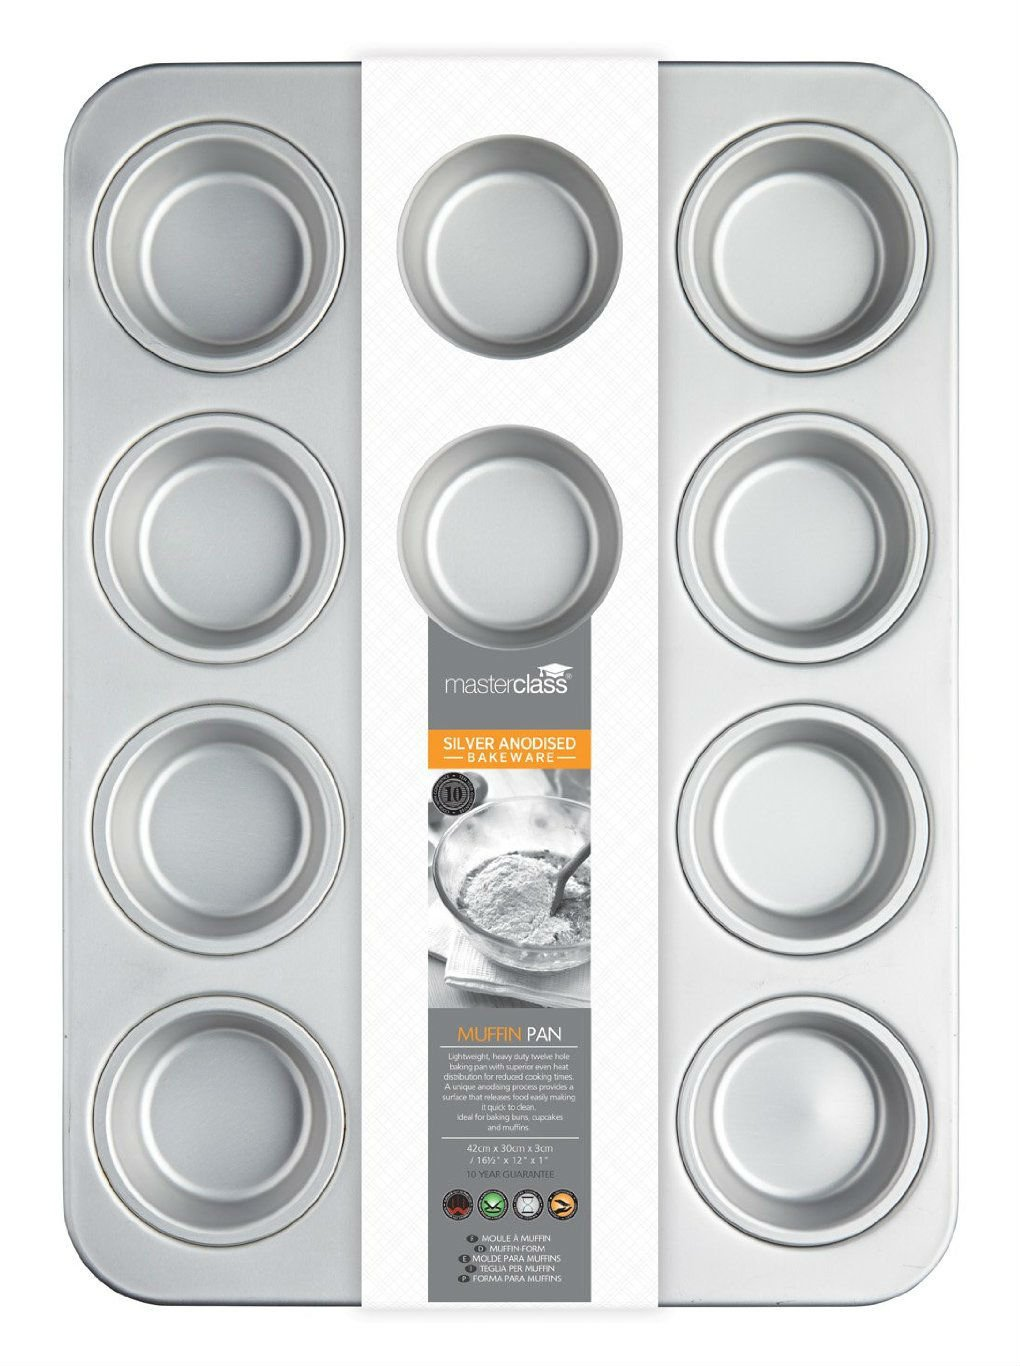 Moules à Muffins Masterclass Silver Anodised 42cm Muffin Pan High Quality And Inexpensive Articles Pour Le Four